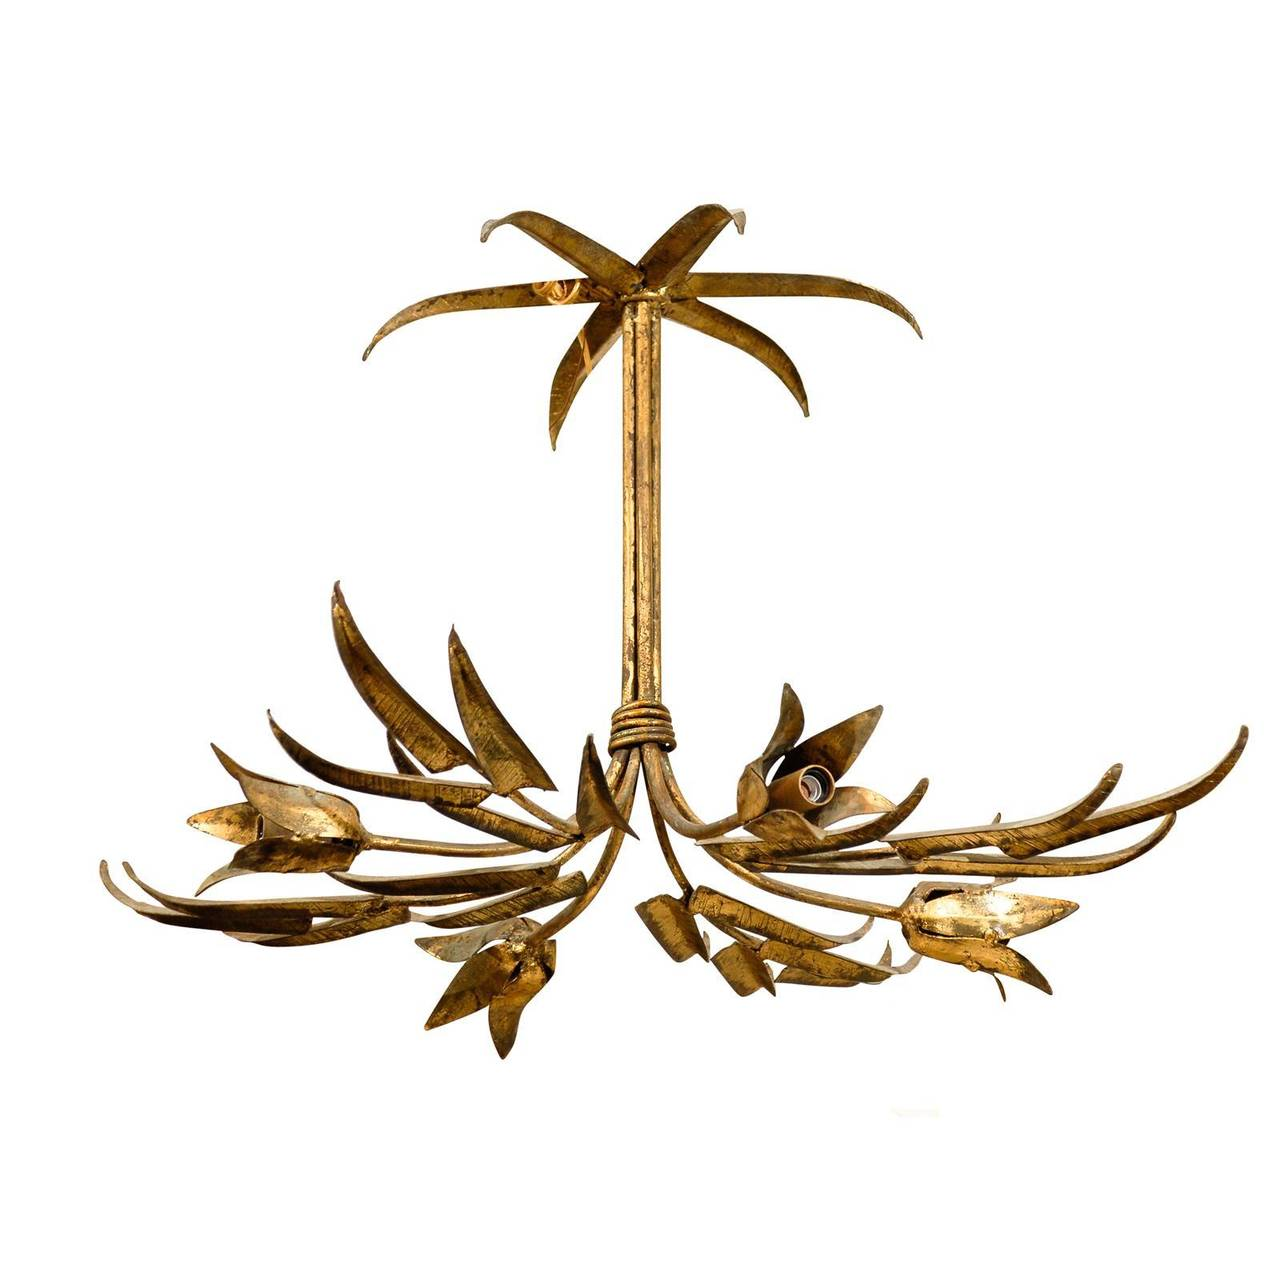 Spanish Gilt Metal Light Fixture at 1stdibs